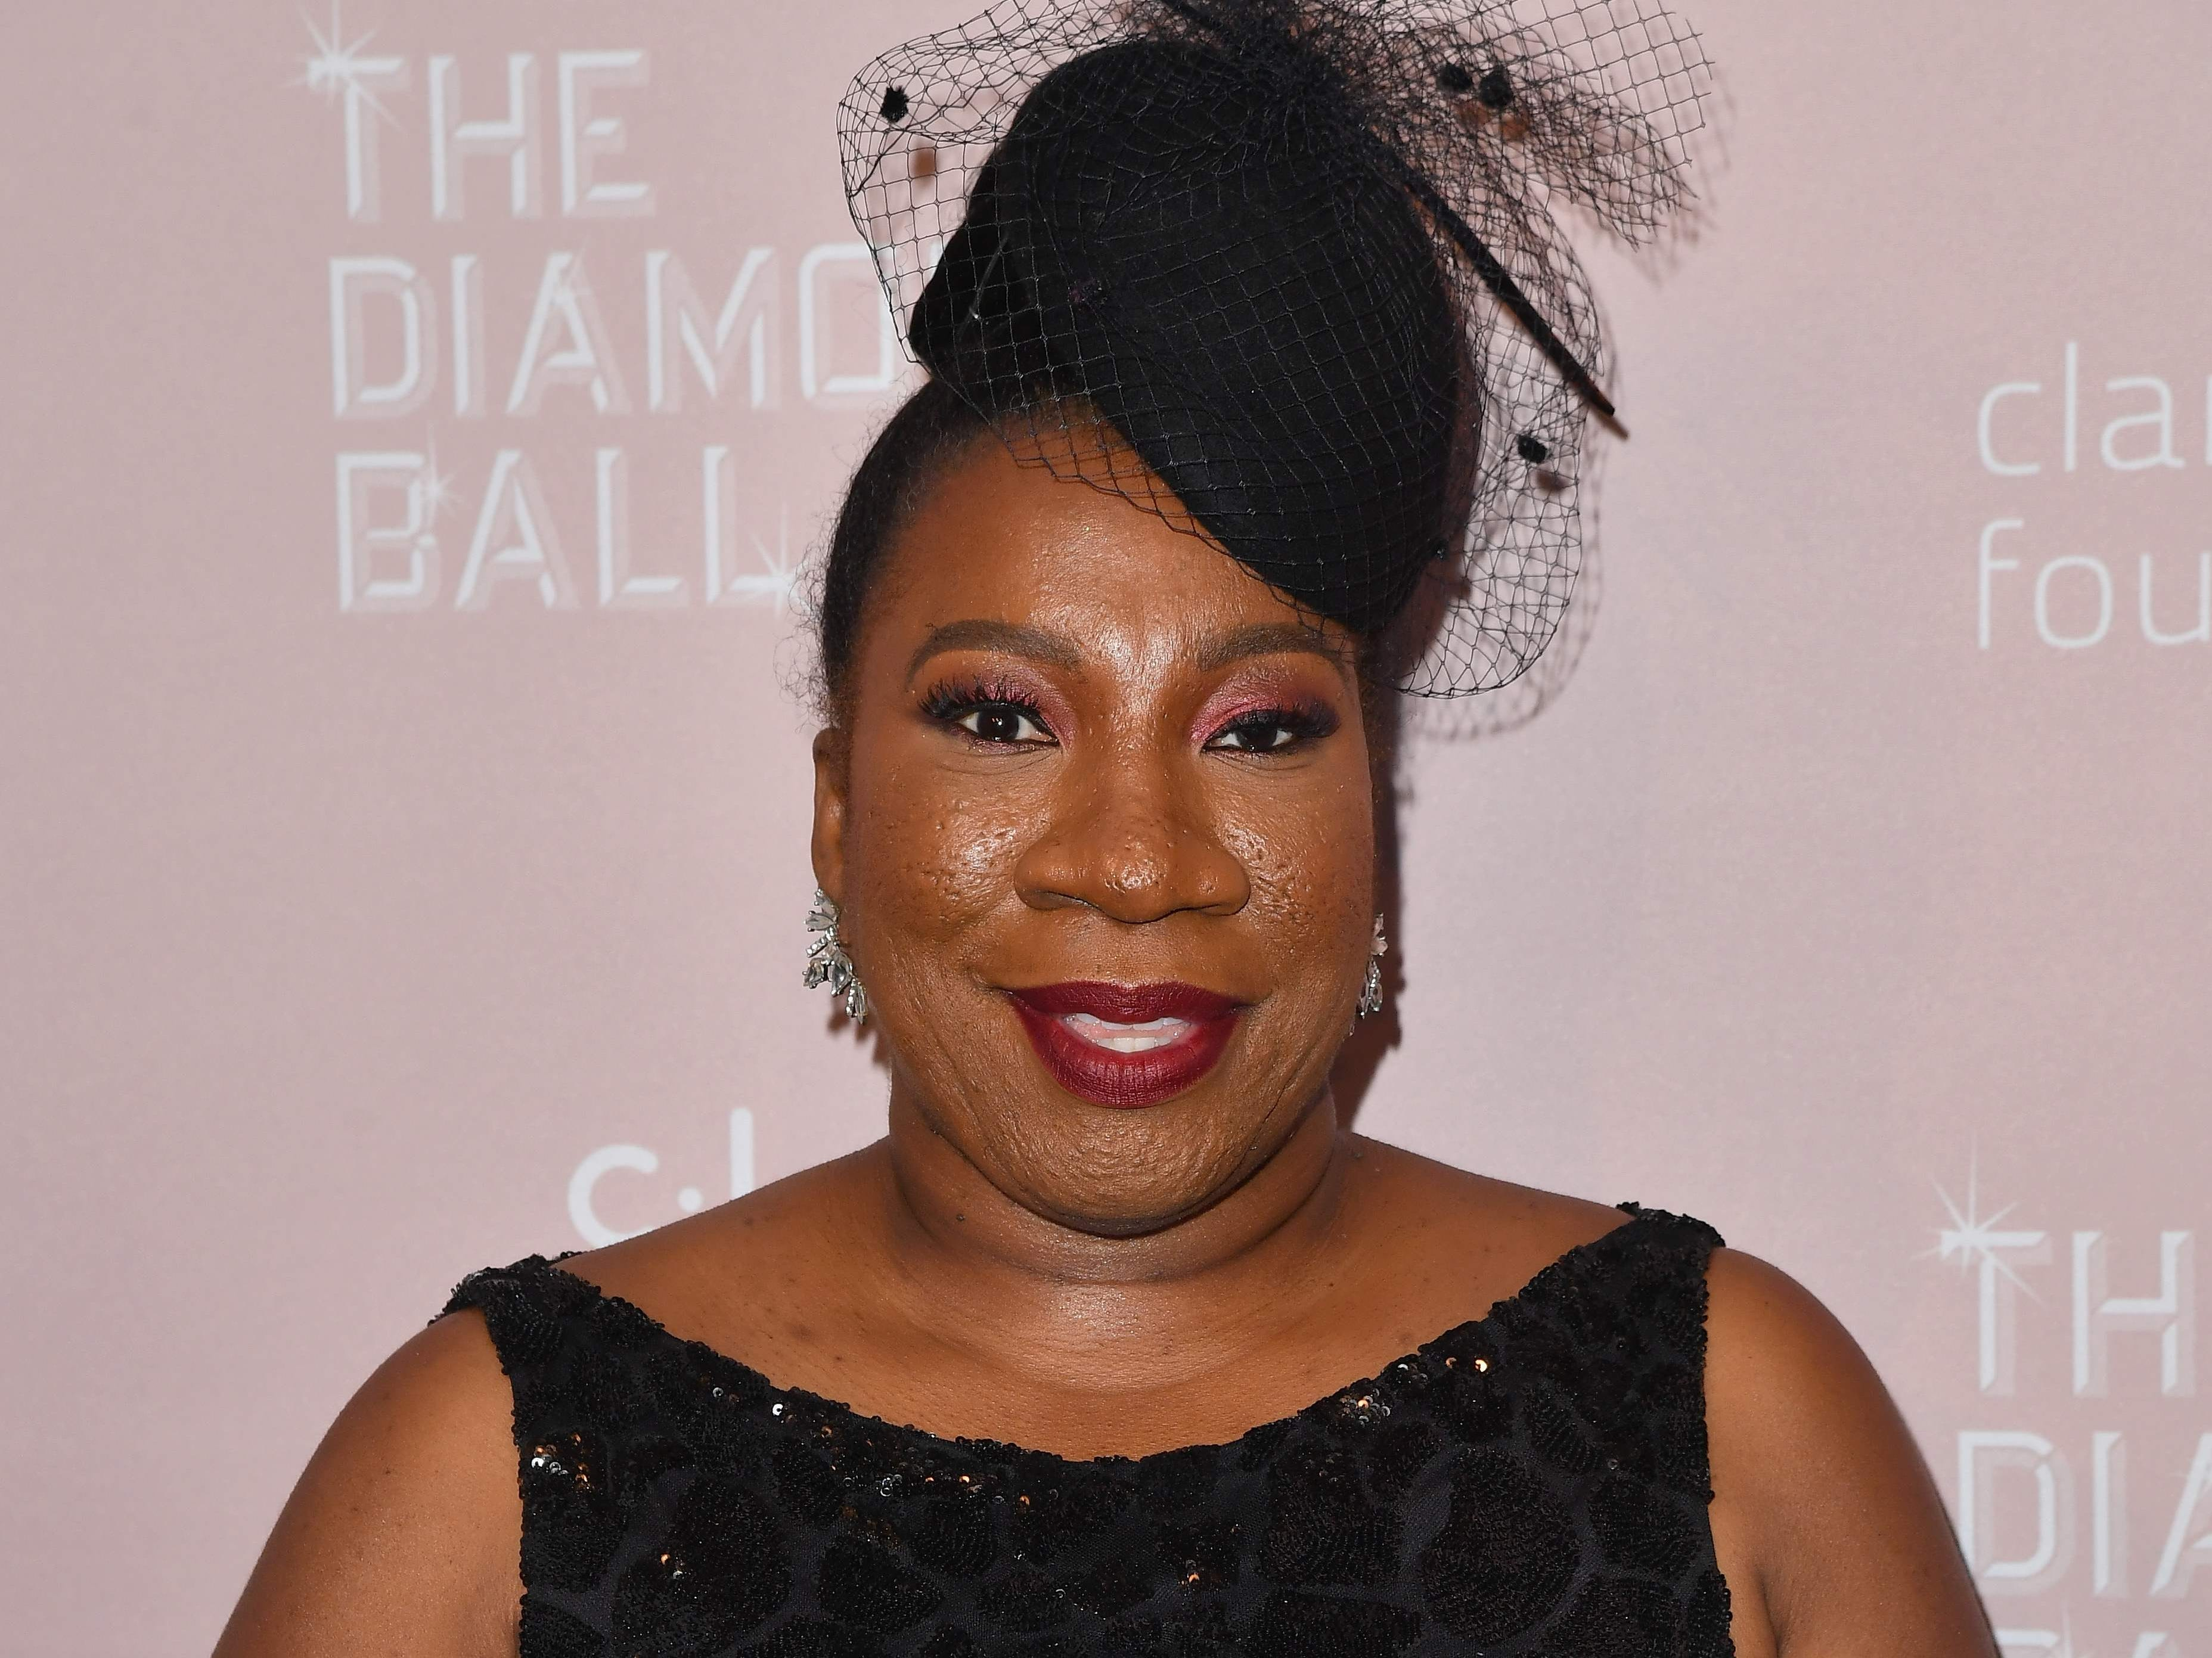 US activist Tarana Burke attends Rihanna's 4th Annual Diamond Ball at Cipriani Wall Street on September 13, 2018 in New York City. (Photo by Angela Weiss / AFP)ANGELA WEISS/AFP/Getty Images ORIG FILE ID: AFP_1932OG